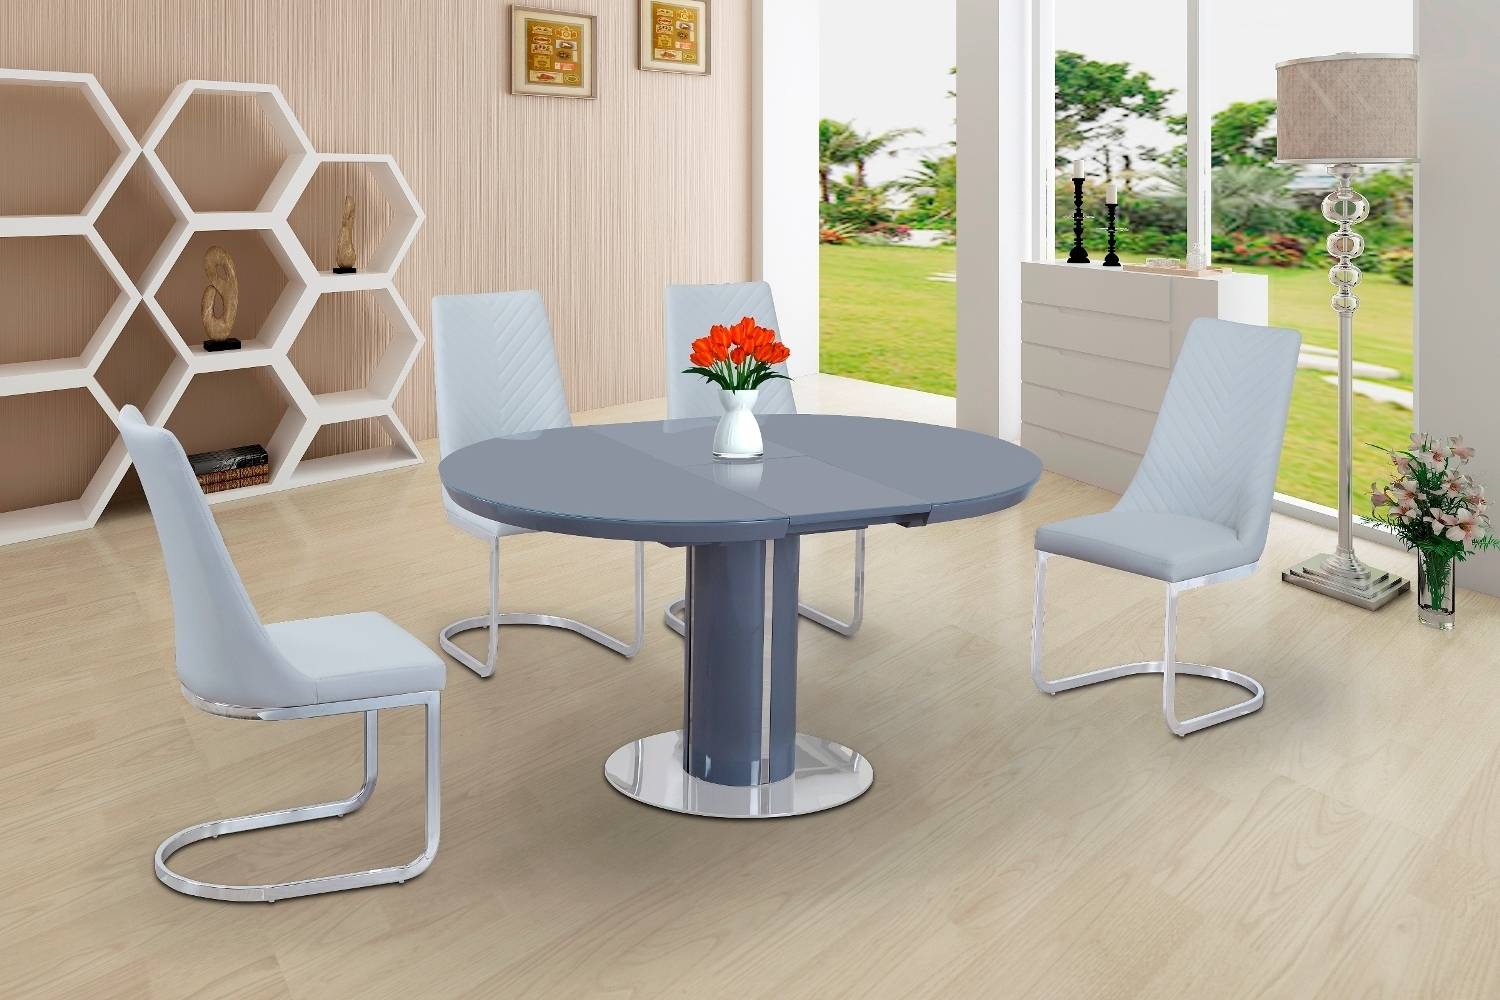 Round Grey Glass High Gloss Dining Table And 6 White Chairs